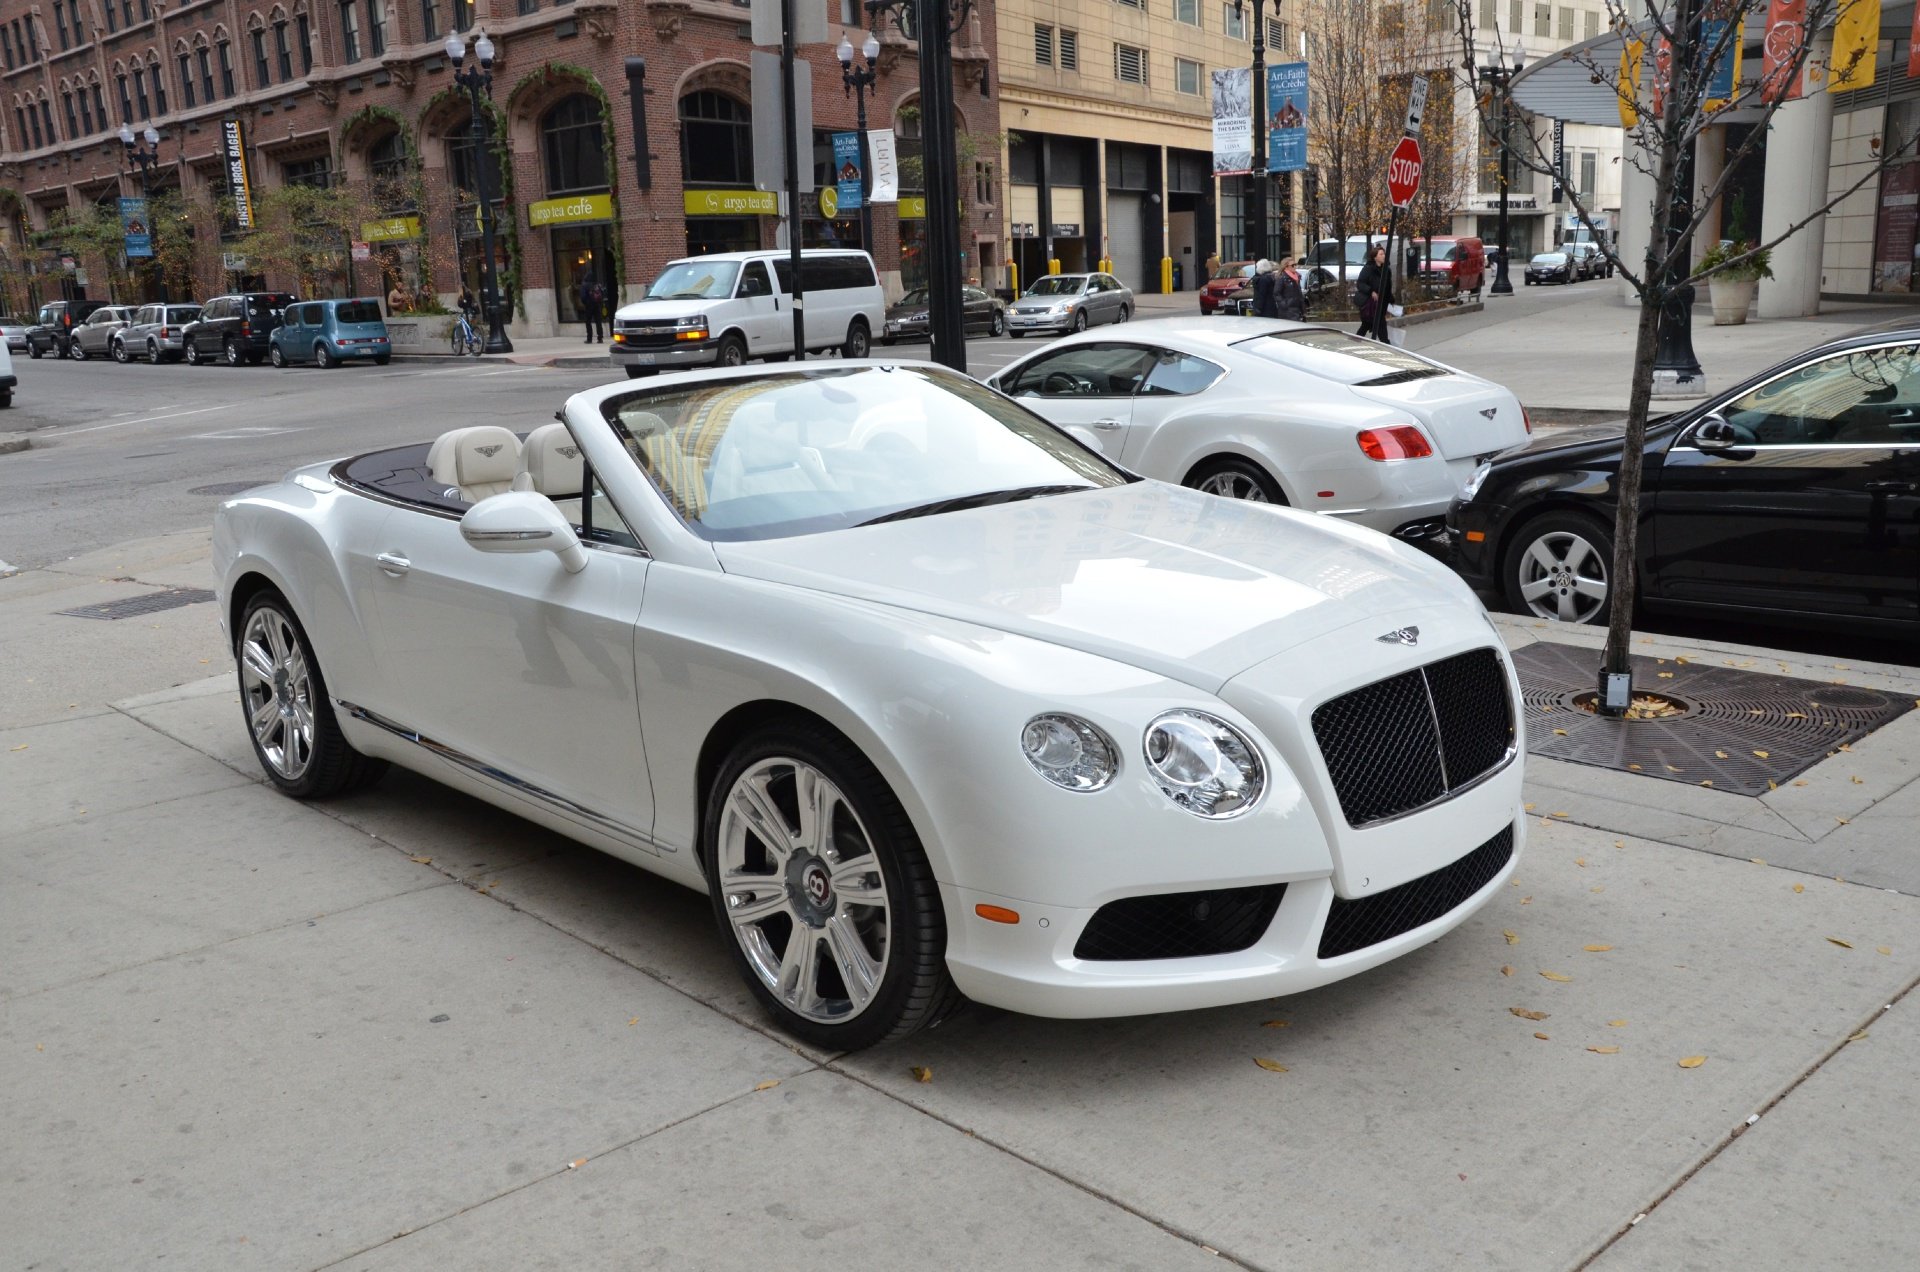 2013 Bentley Continental GTC V8 Stock # GC-ROLAND144 For